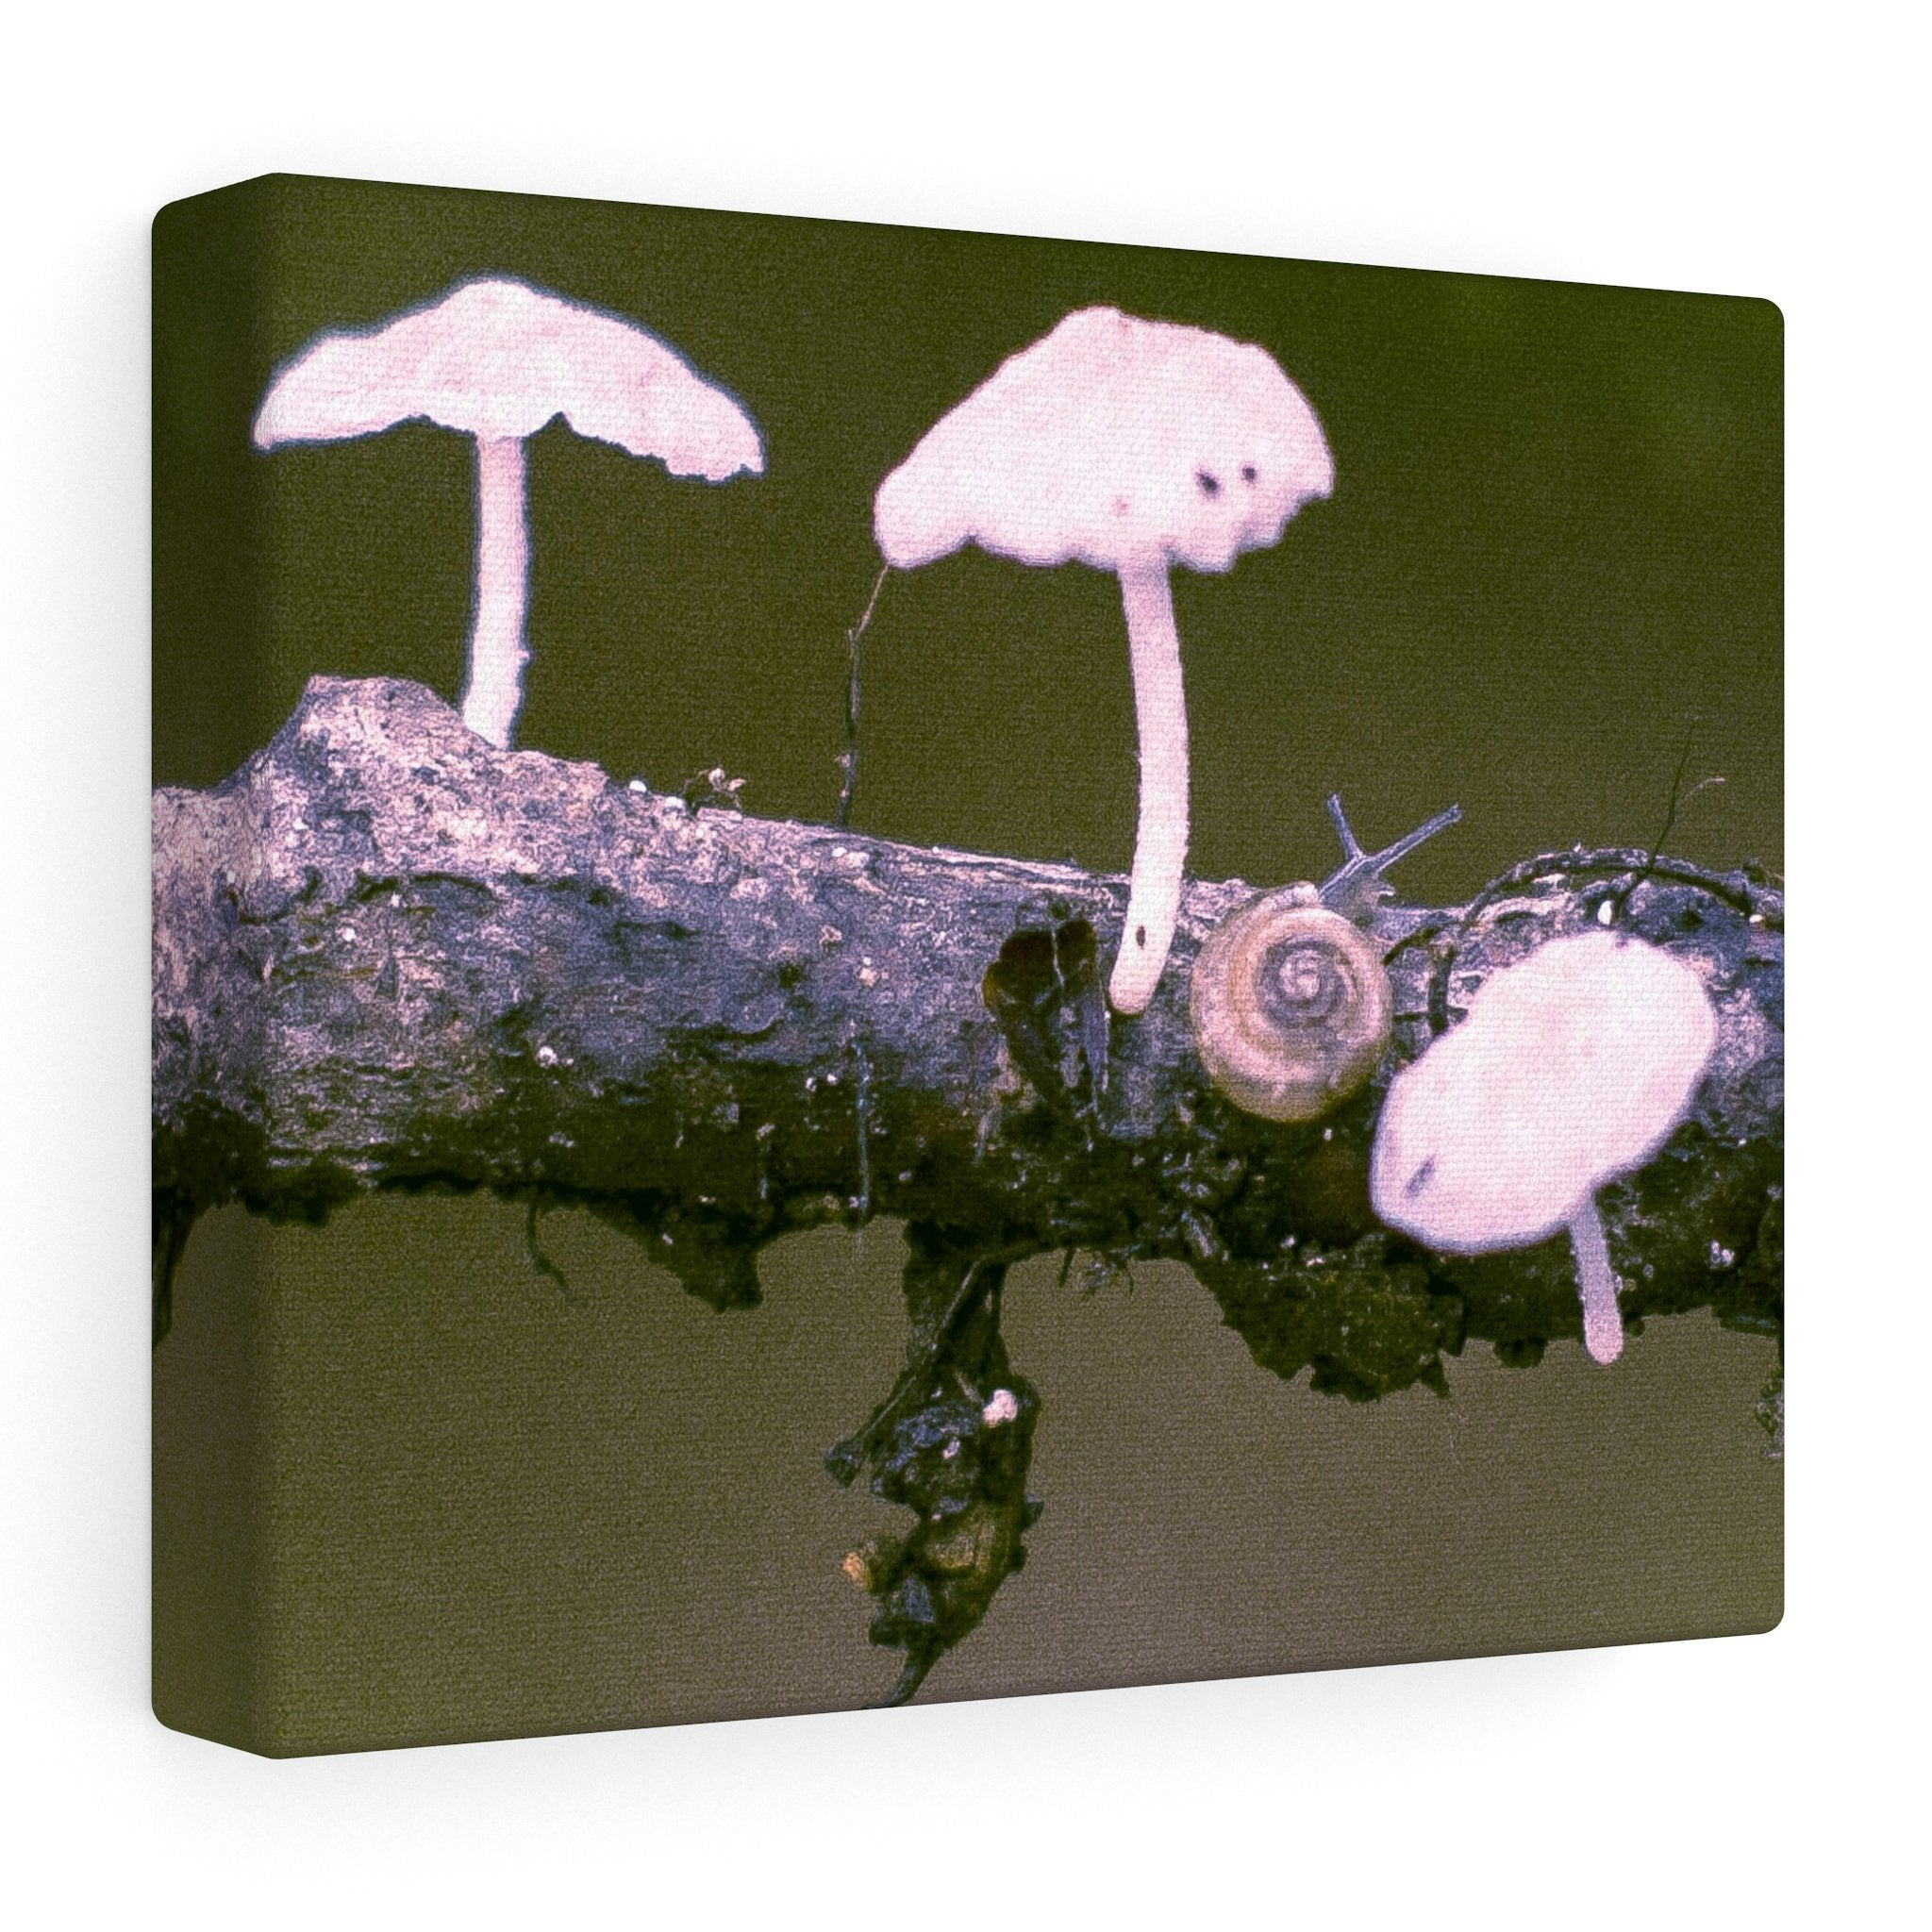 Snail on a Log Stretched canvas 10″ × 8″ / Stretched Canvas (1.5